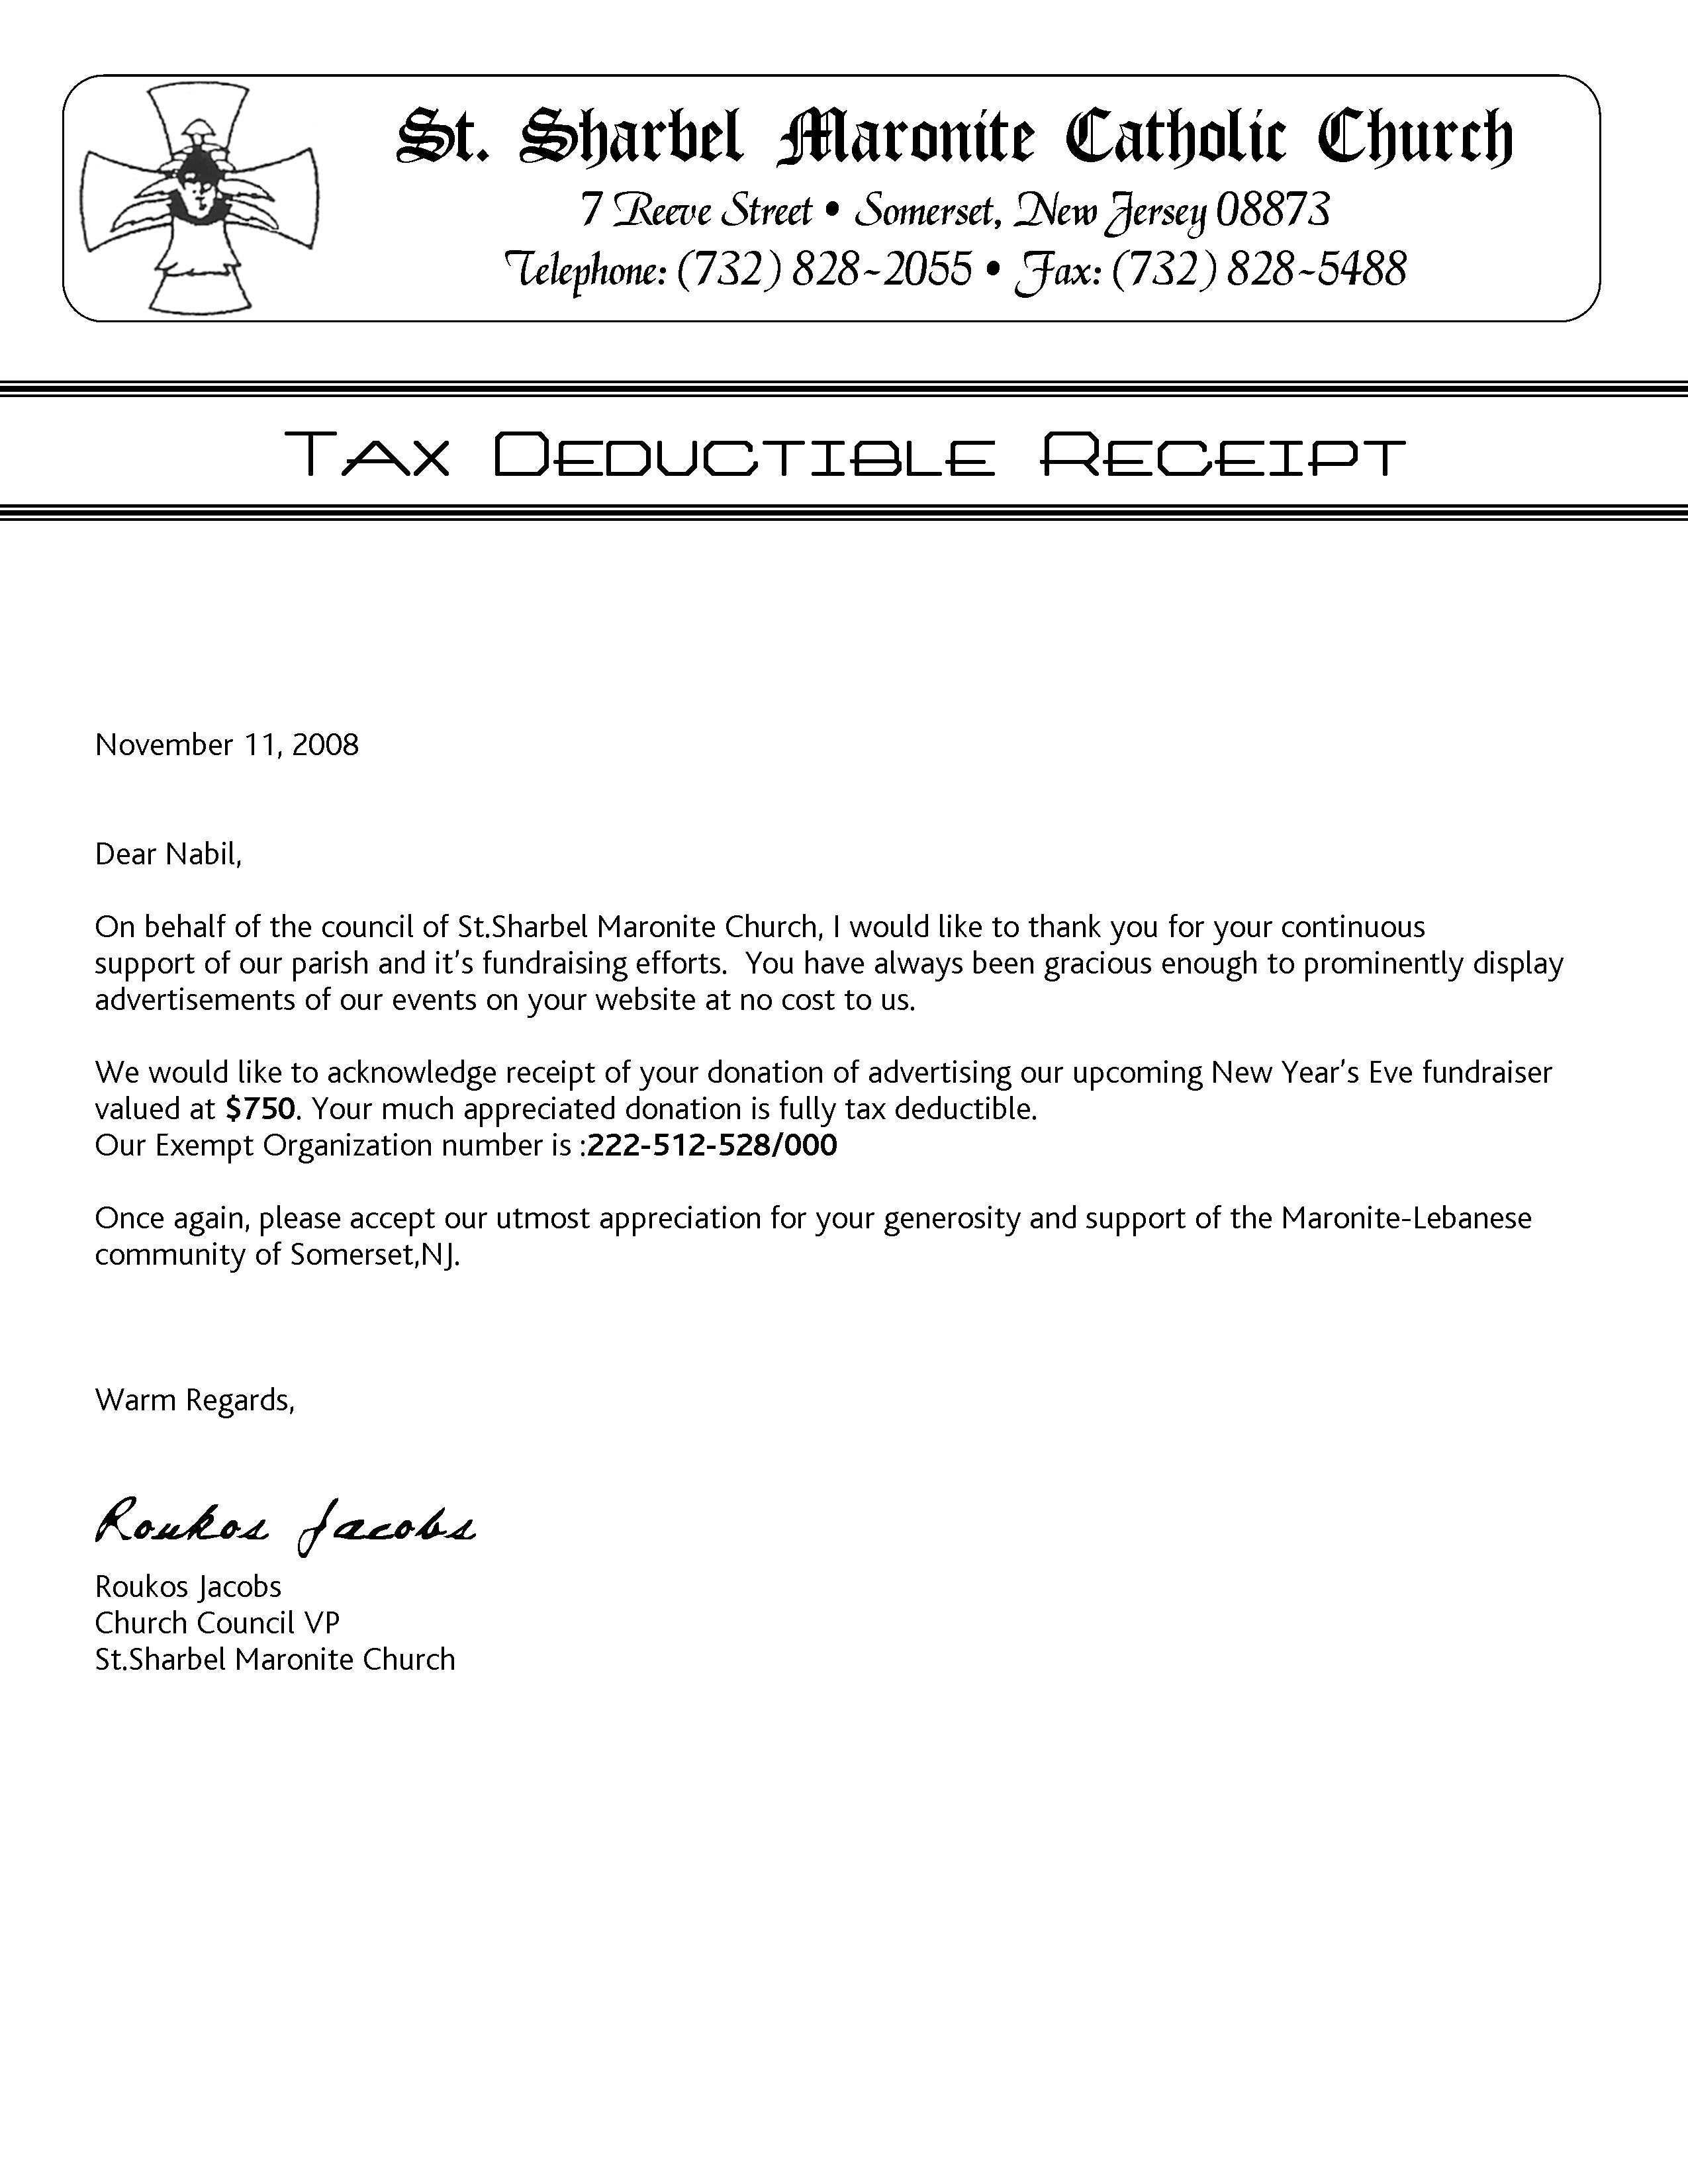 church donation letter for tax purposes template charlotte clergy